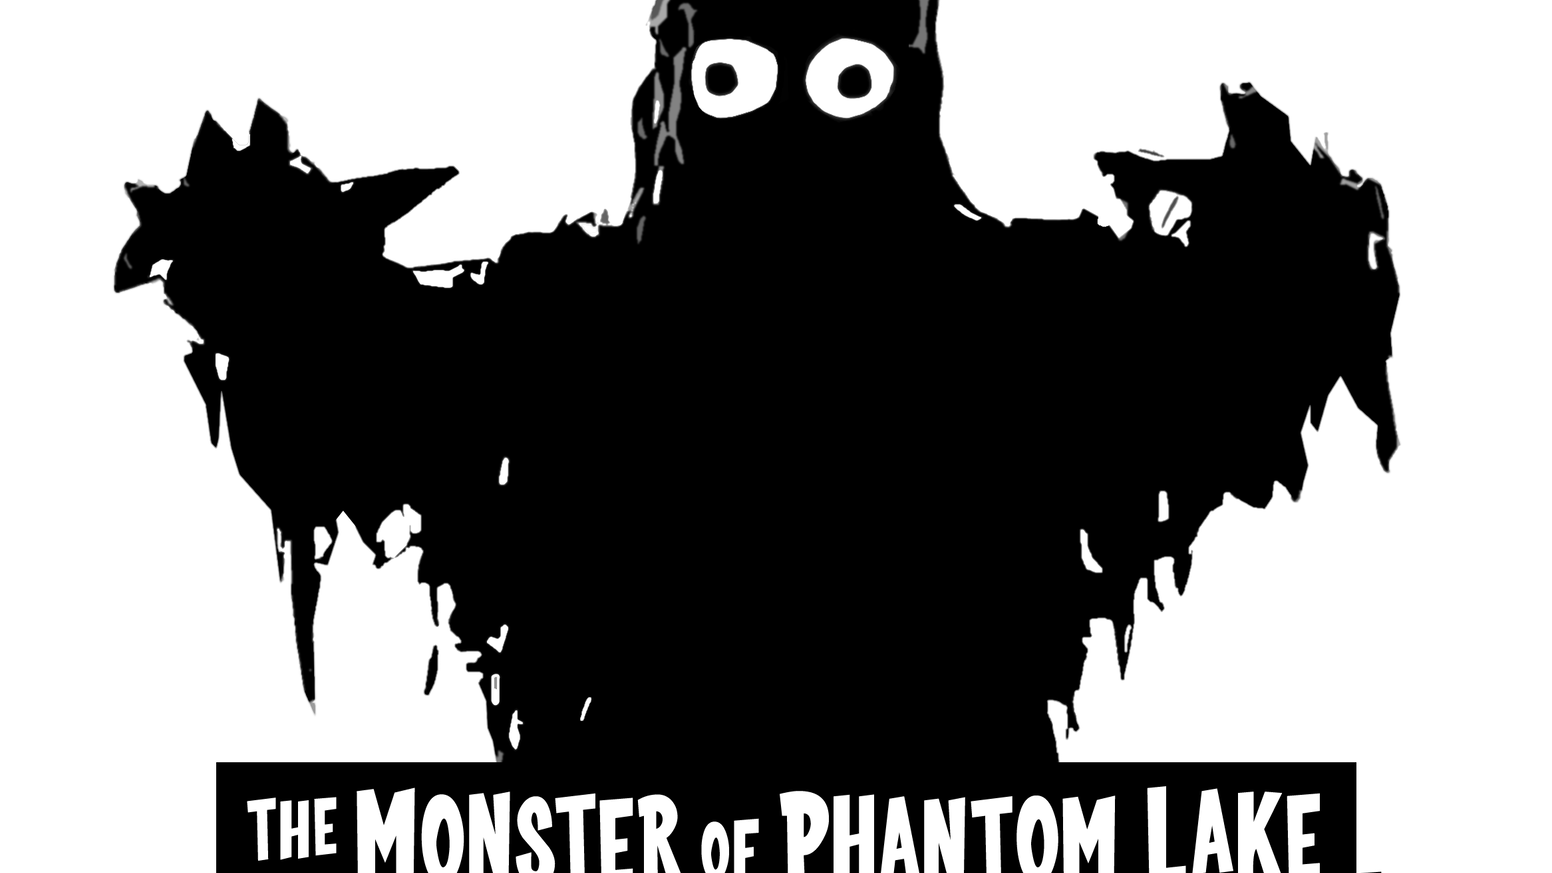 Musical theatre adaptation (plus DVD & cast recording) of a 1950s-style monster movie staged live on July 21-24, 2016 in Menomonie, WI. Updates at monsterofphantomlake.com